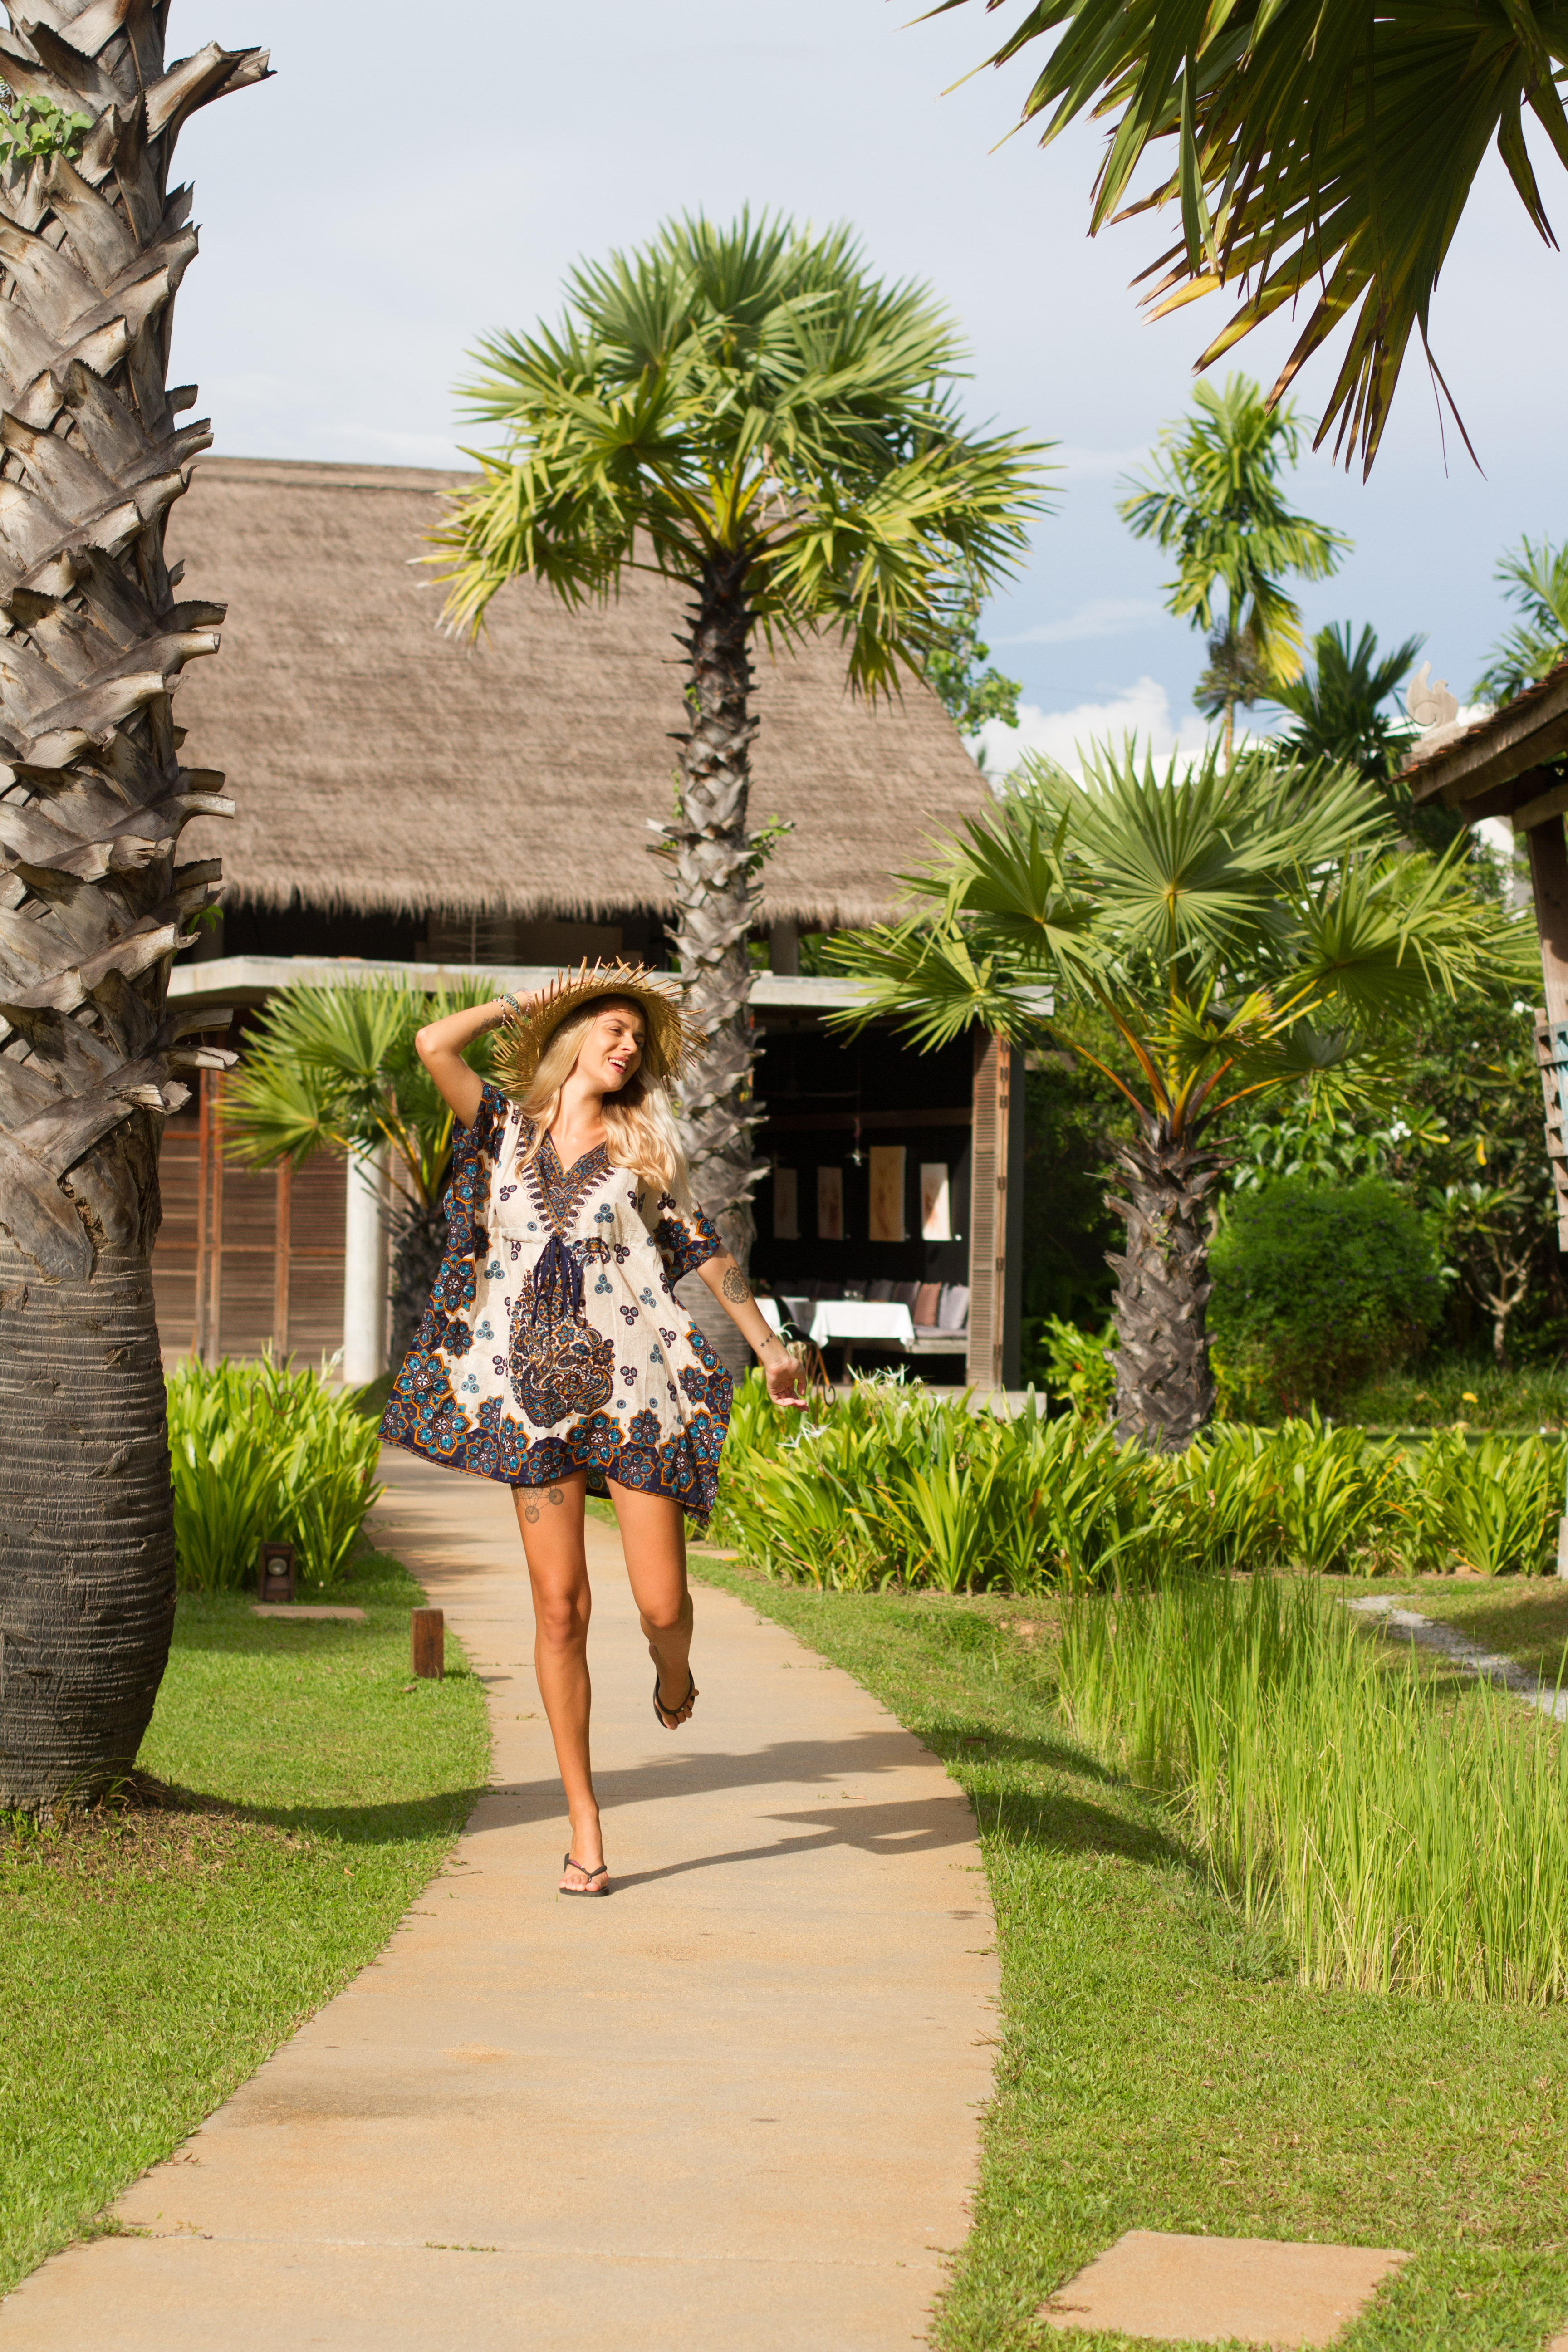 sala lodges luxtravellers luxury hotel review